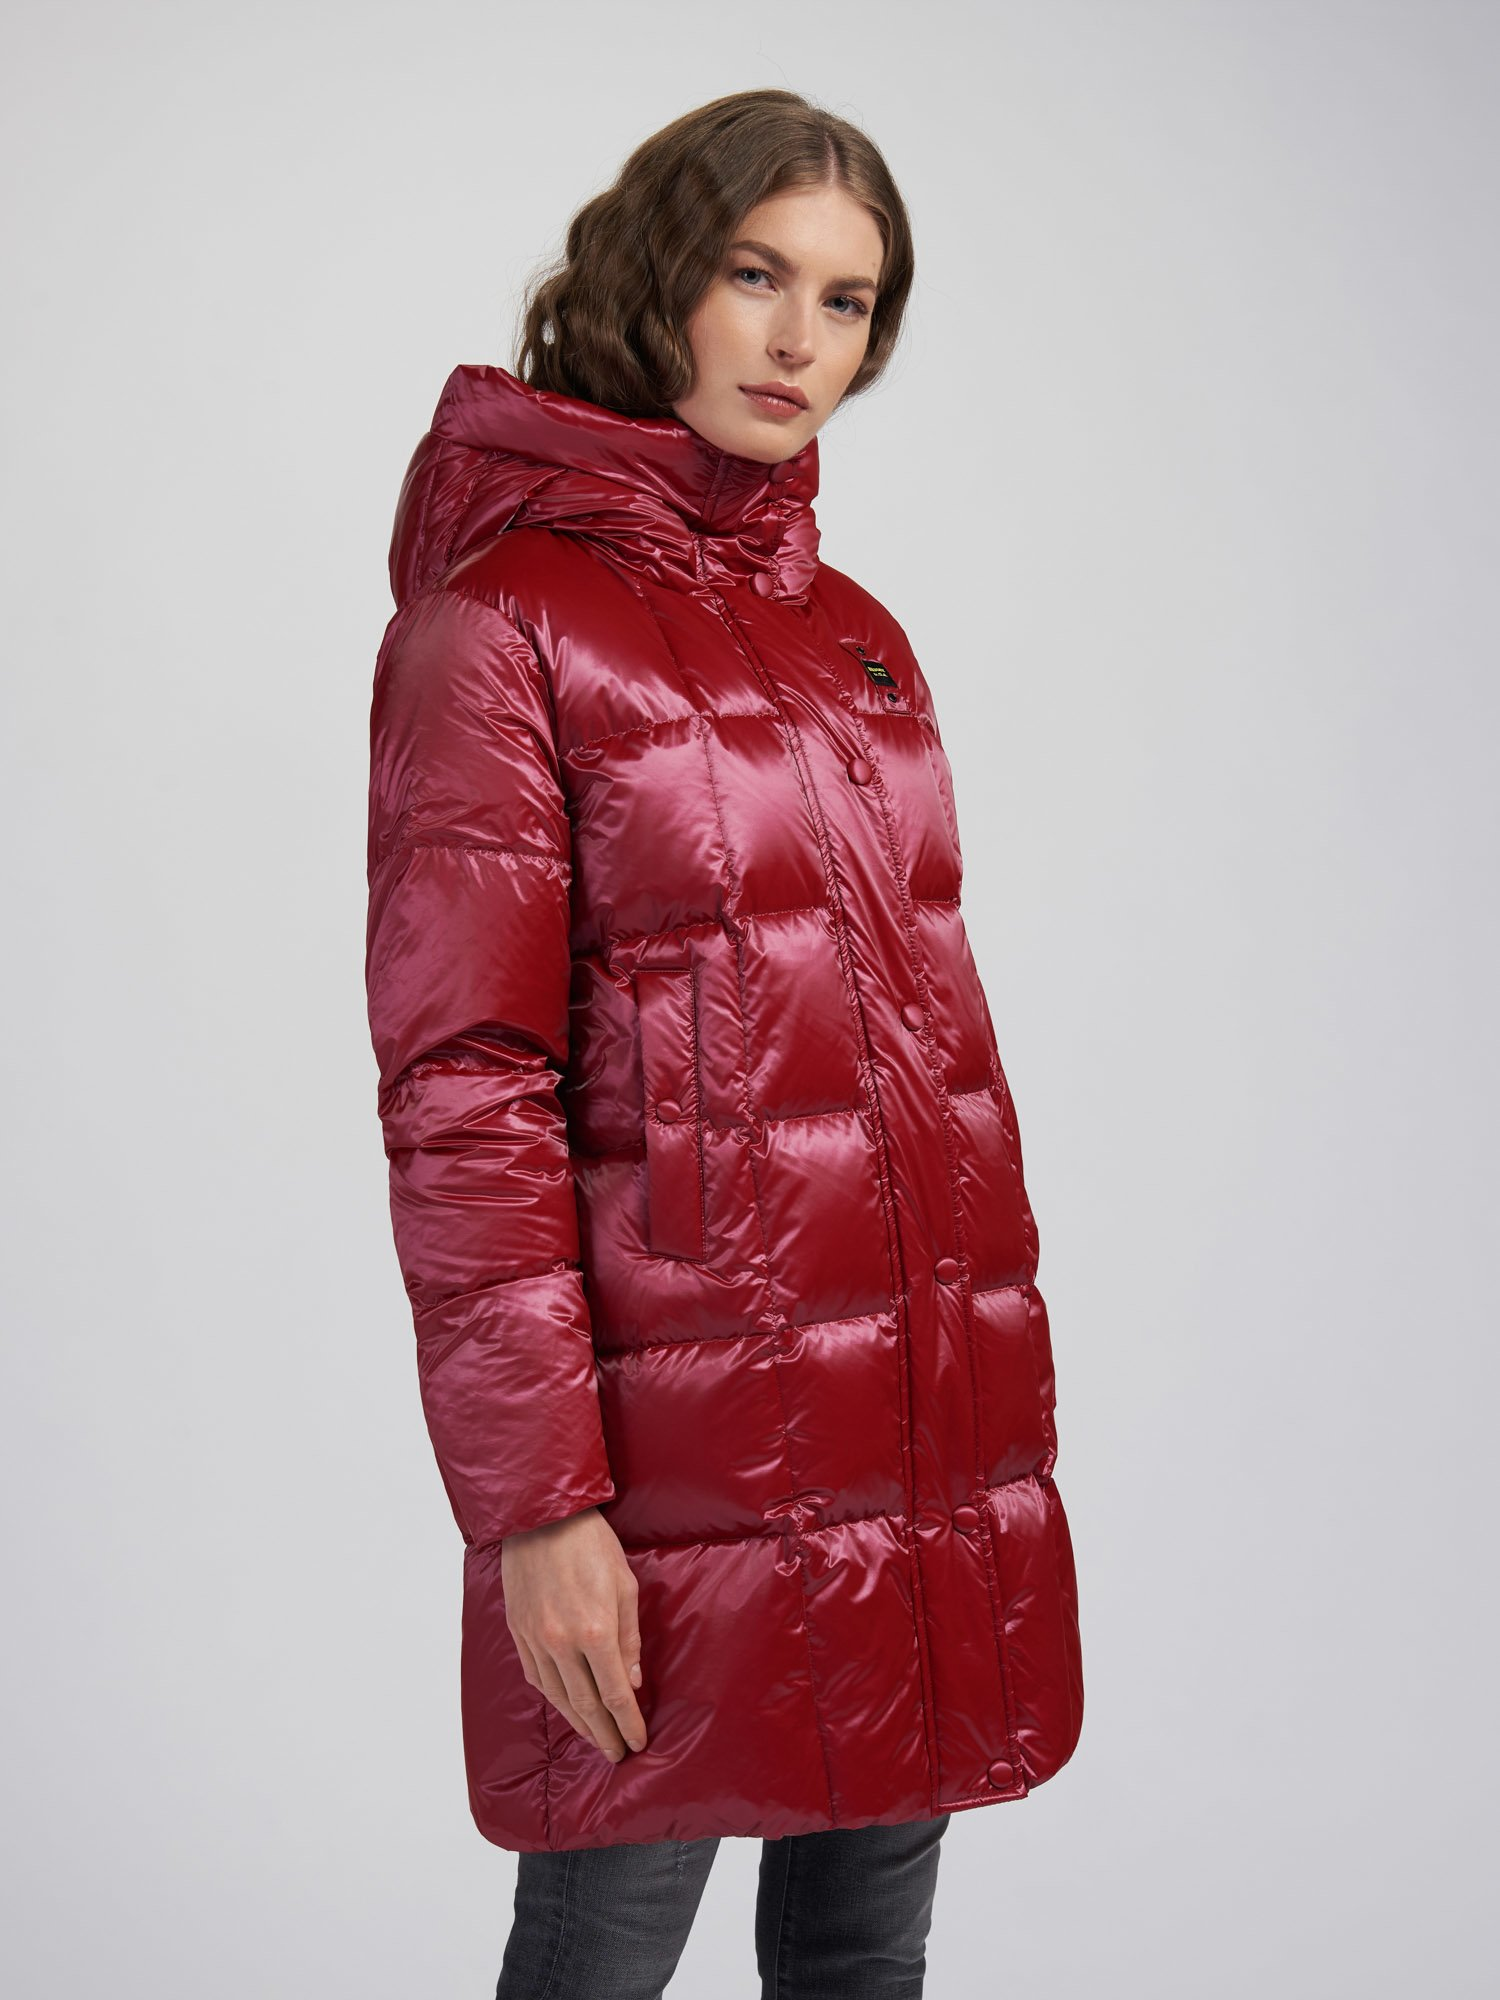 TERESA DOWN JACKET WITH SQUARE STITCHING - Blauer